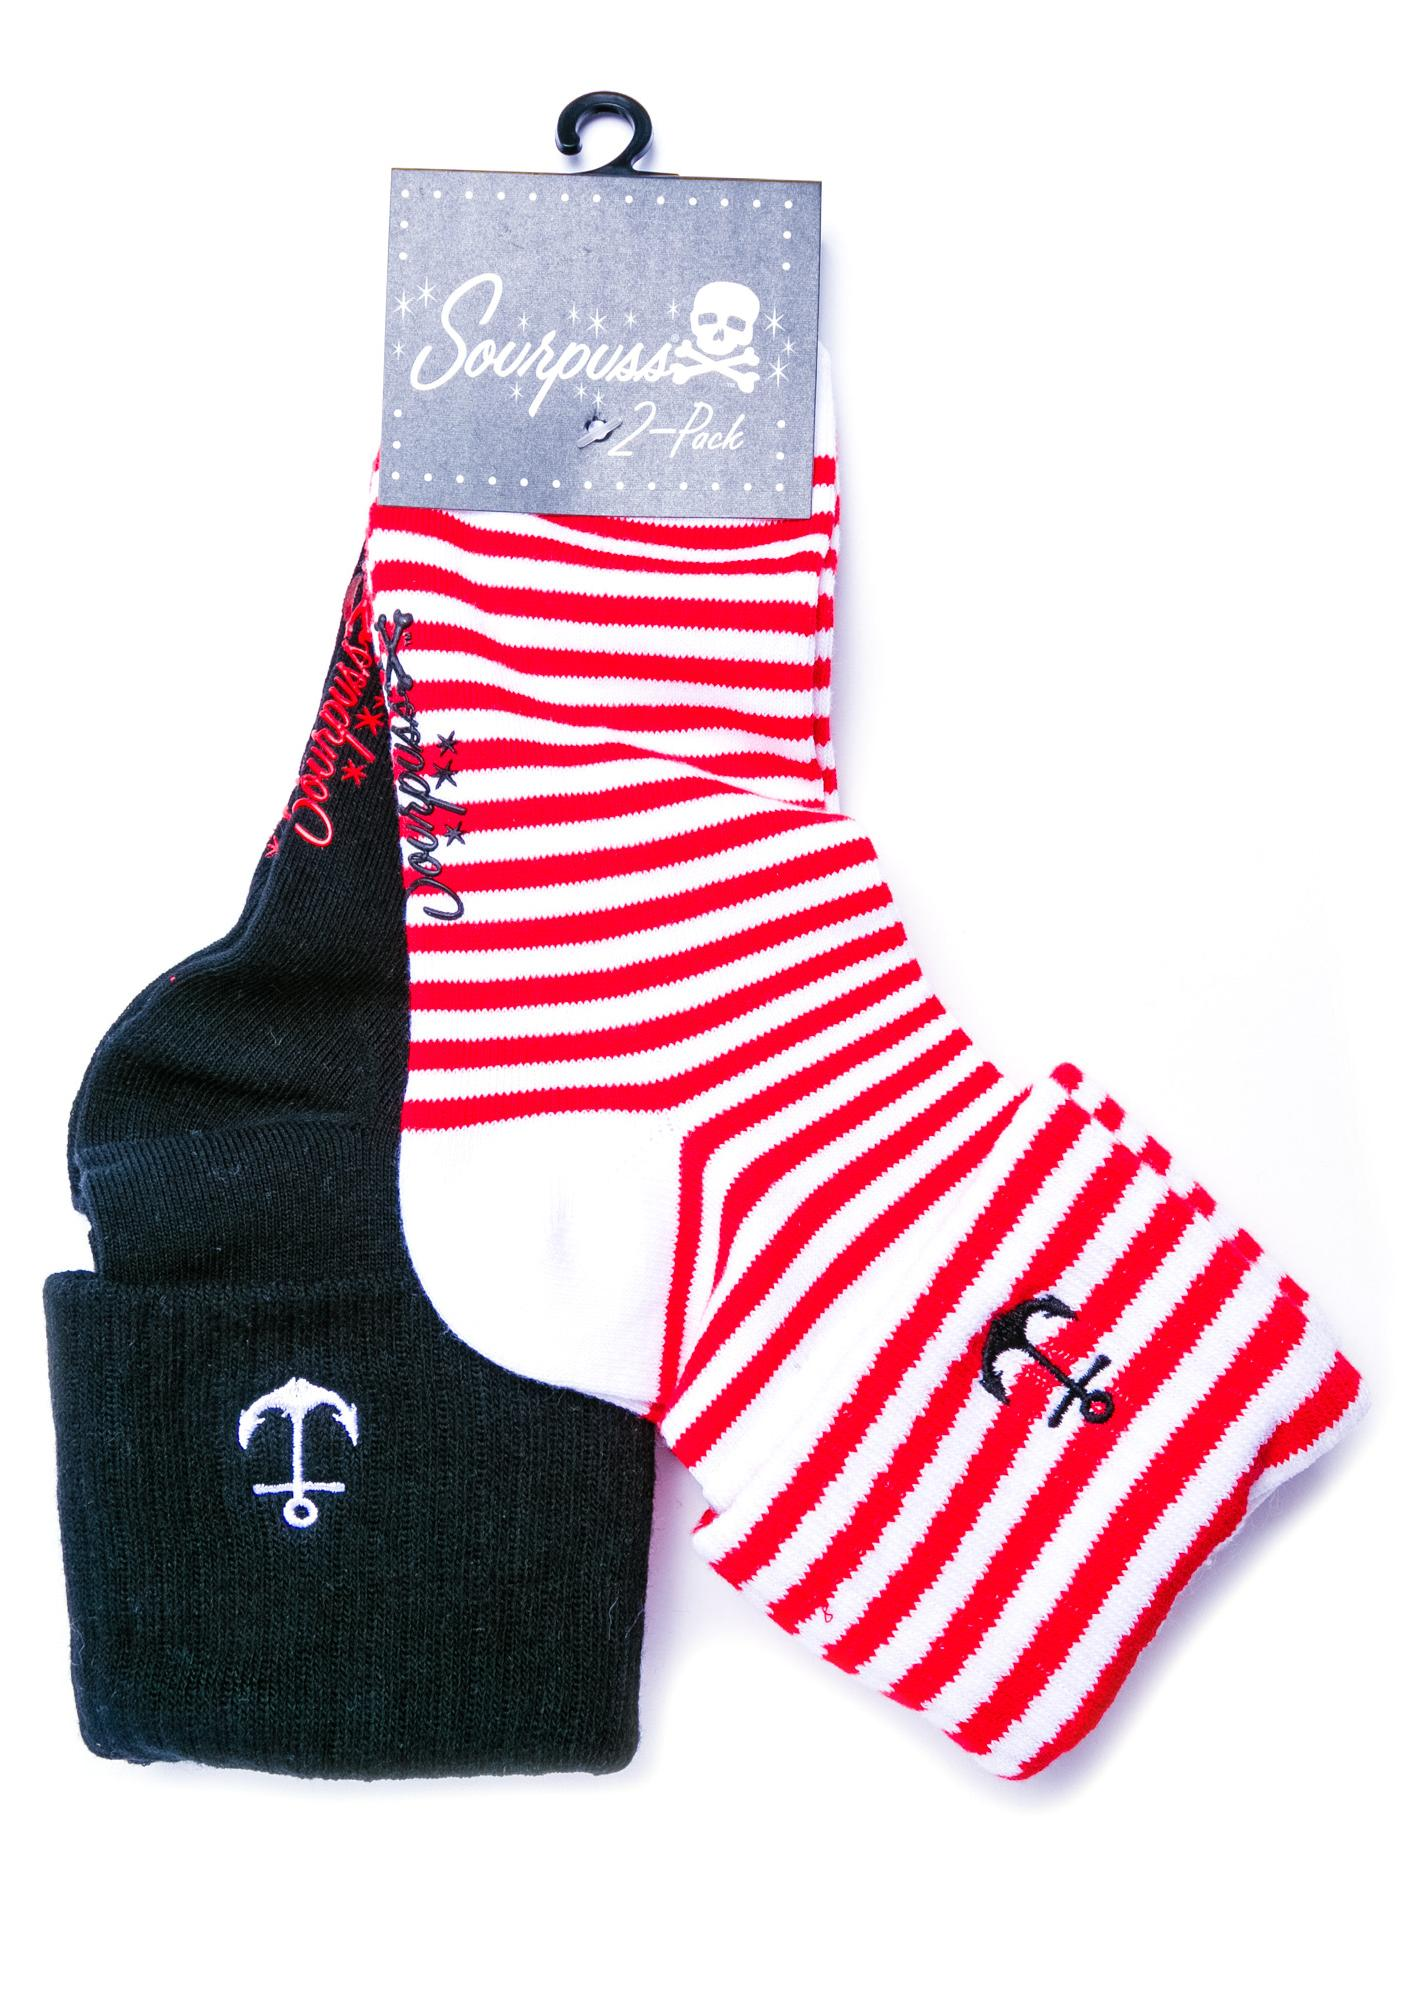 Sourpuss Clothing Anchor Socks Set